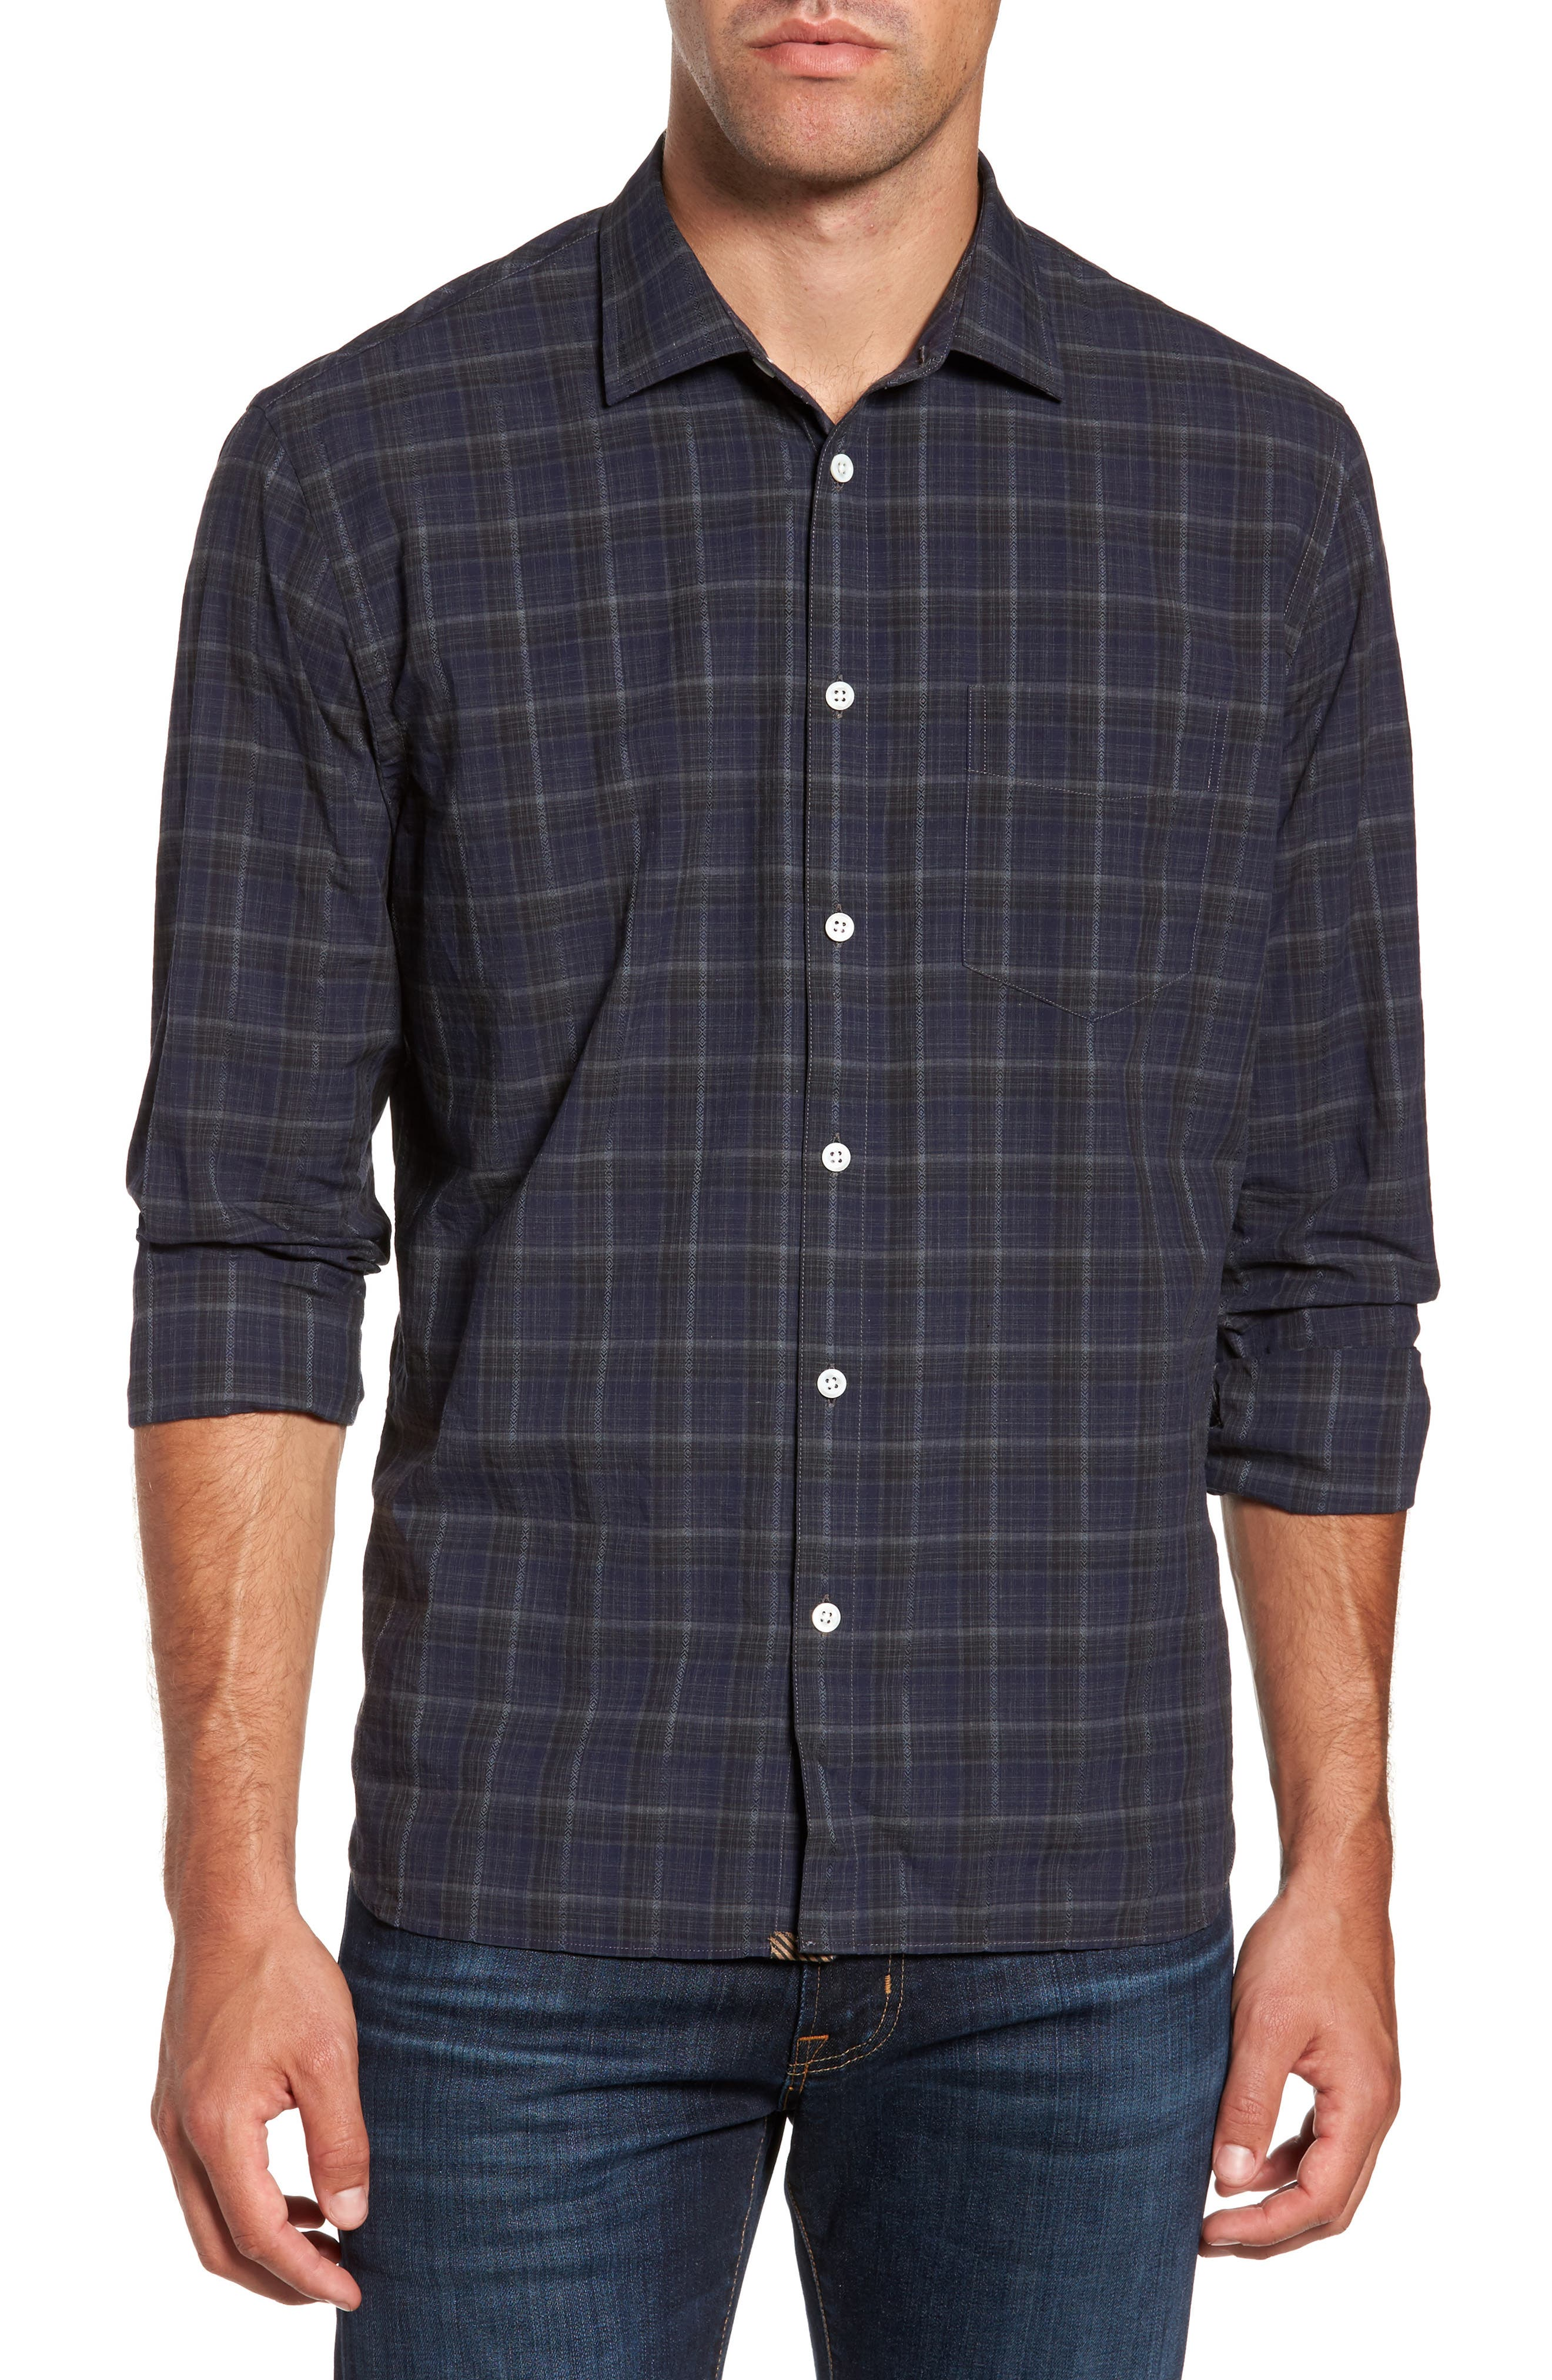 Billy Reid John T Standard Fit Plaid Sport Shirt